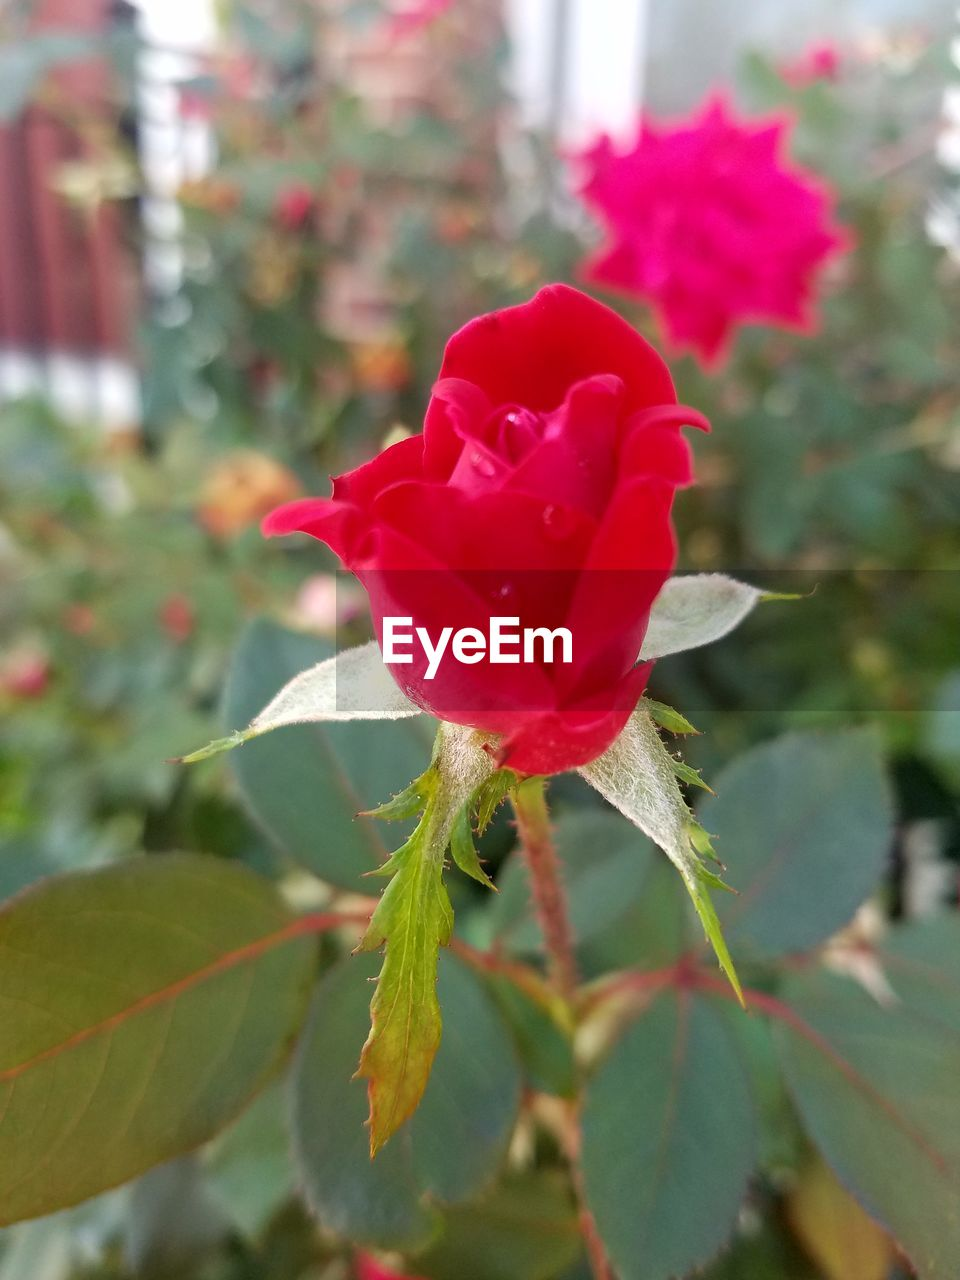 flower, petal, fragility, red, nature, growth, beauty in nature, rose - flower, plant, flower head, freshness, blooming, leaf, day, no people, close-up, outdoors